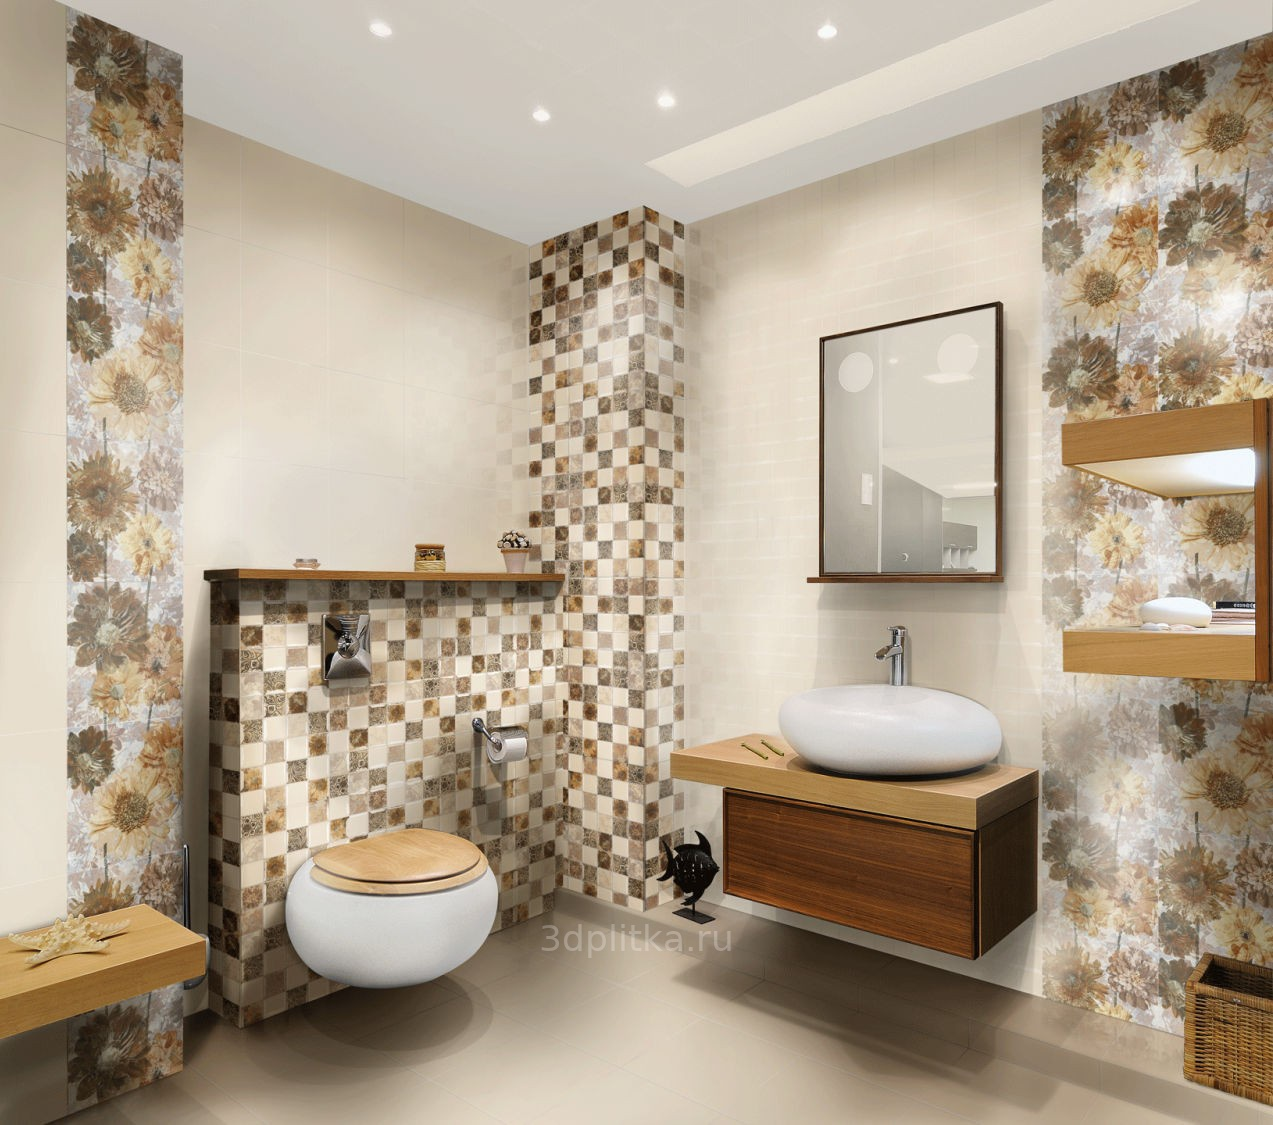 Ceramic bath tile